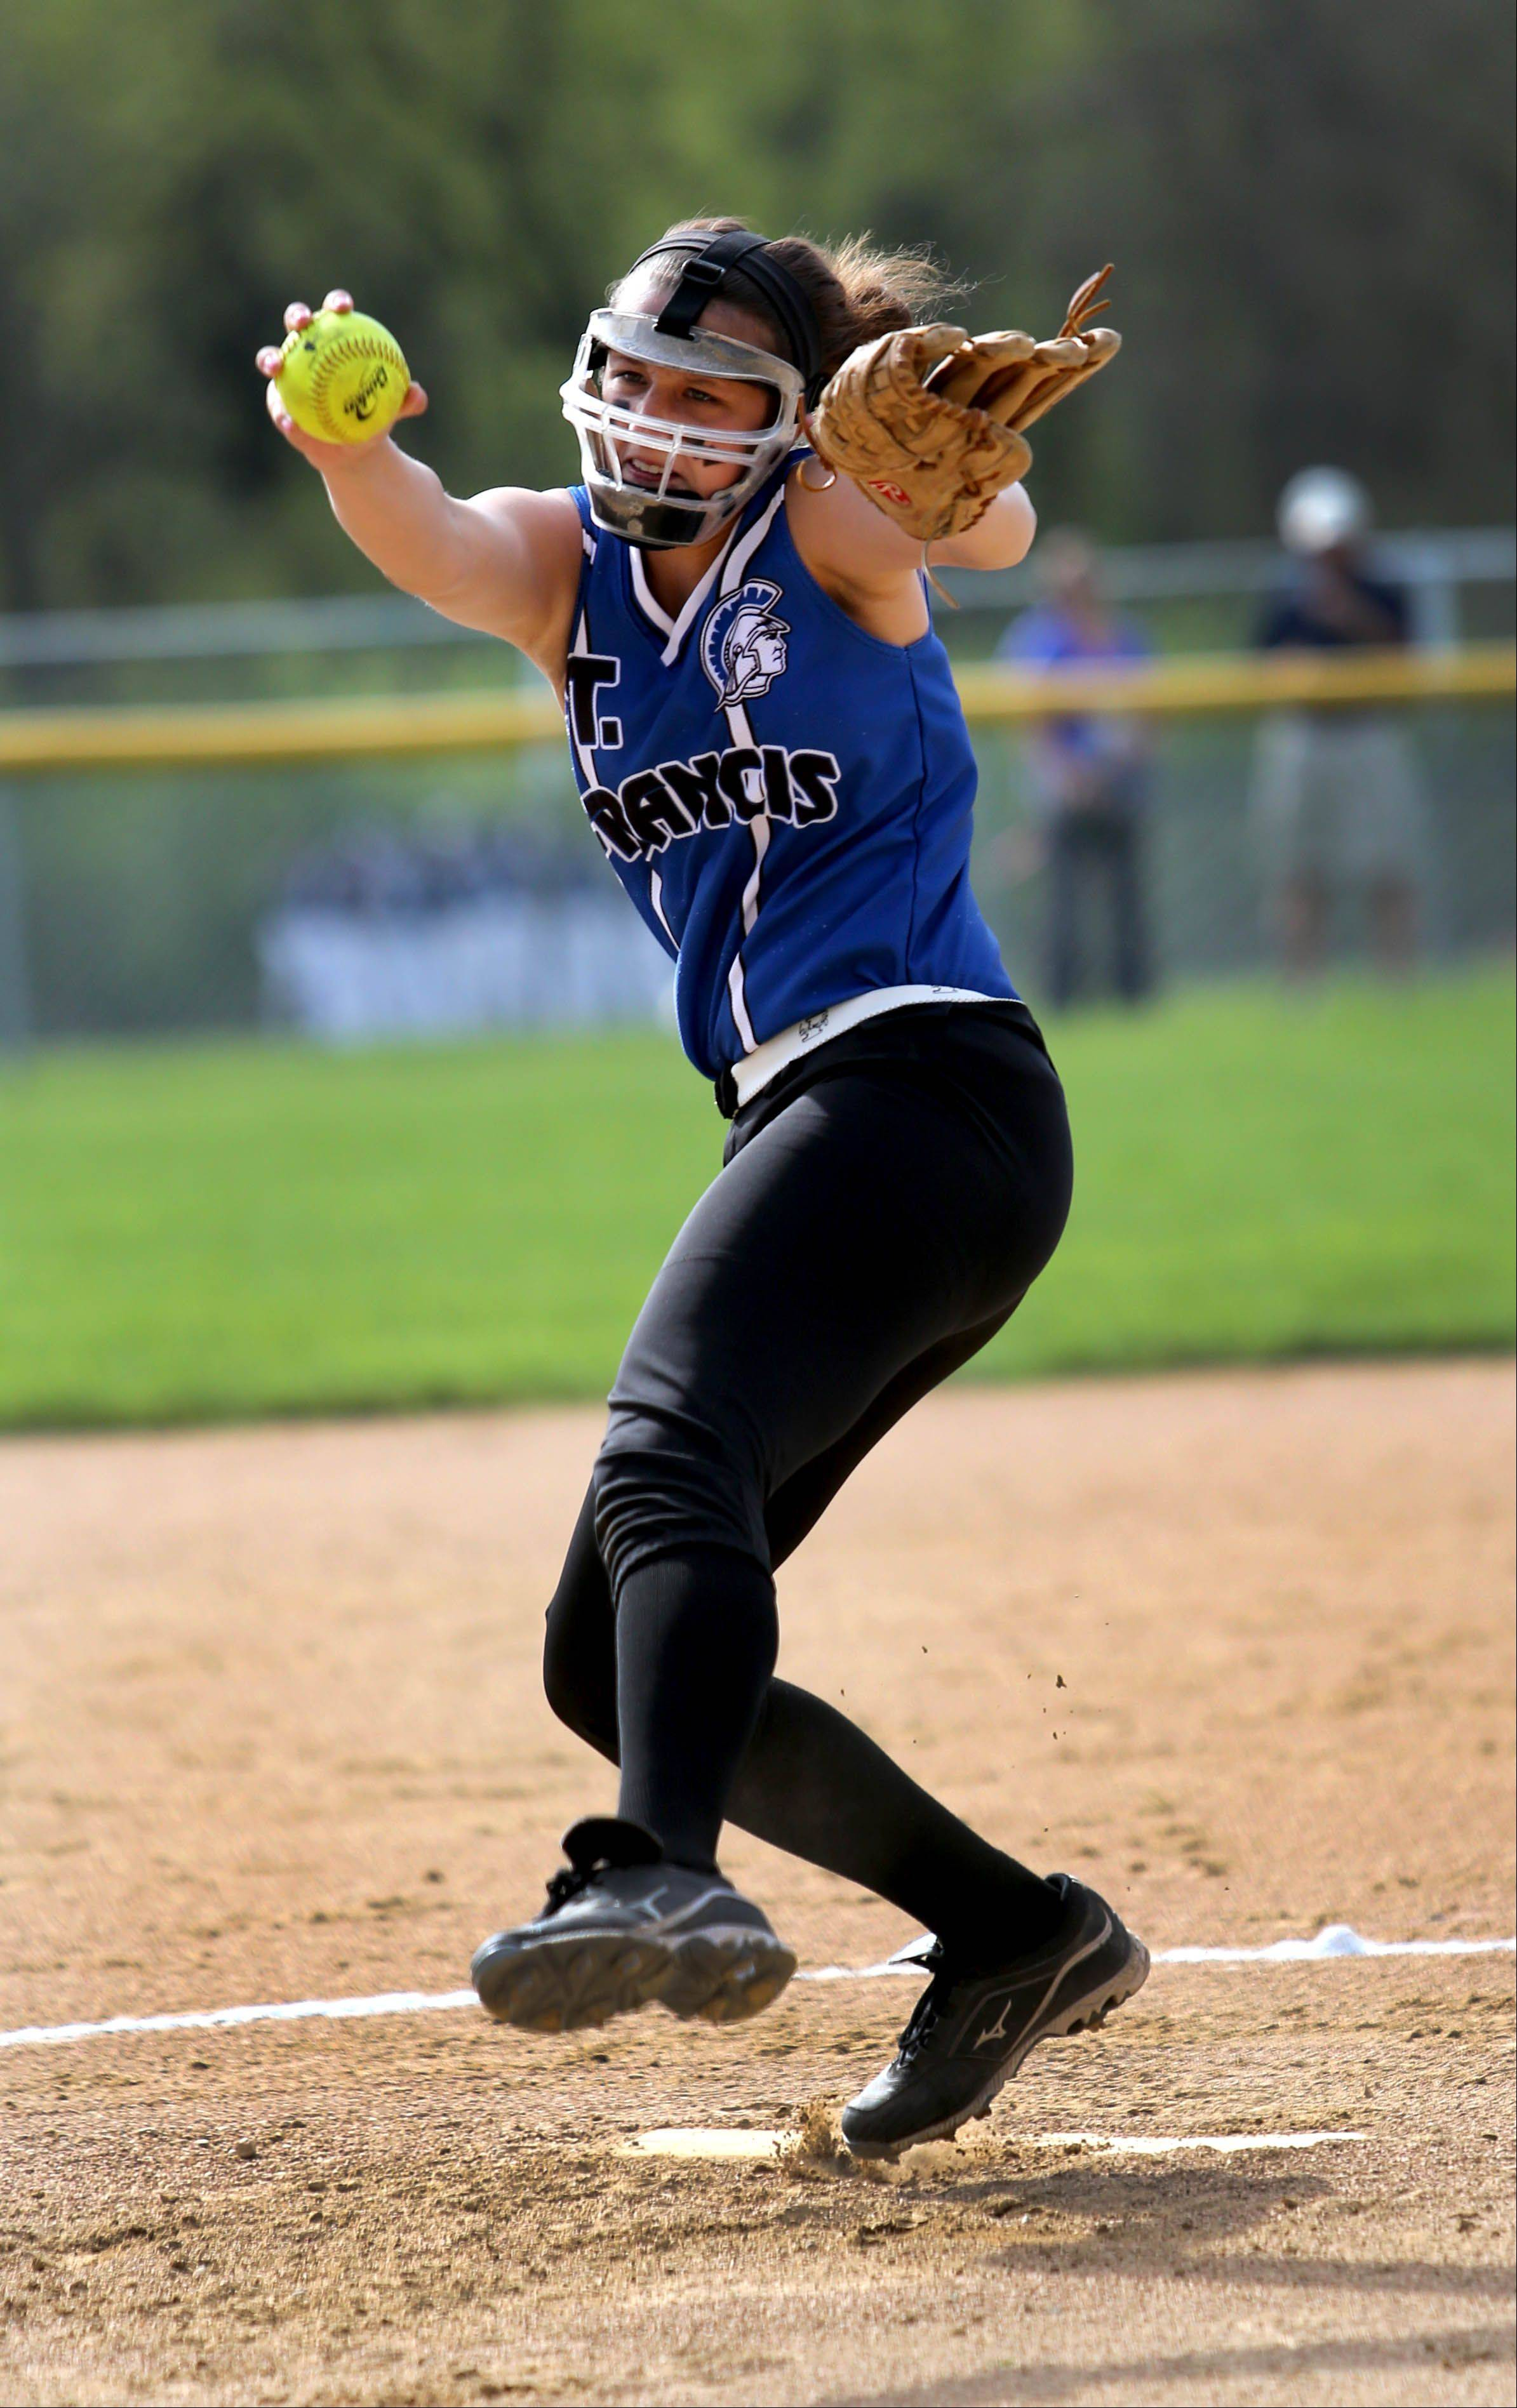 Maggie Remus of St. Francis winds up her pitch against Montini Catholic during girls softball on Monday in Wheaton.